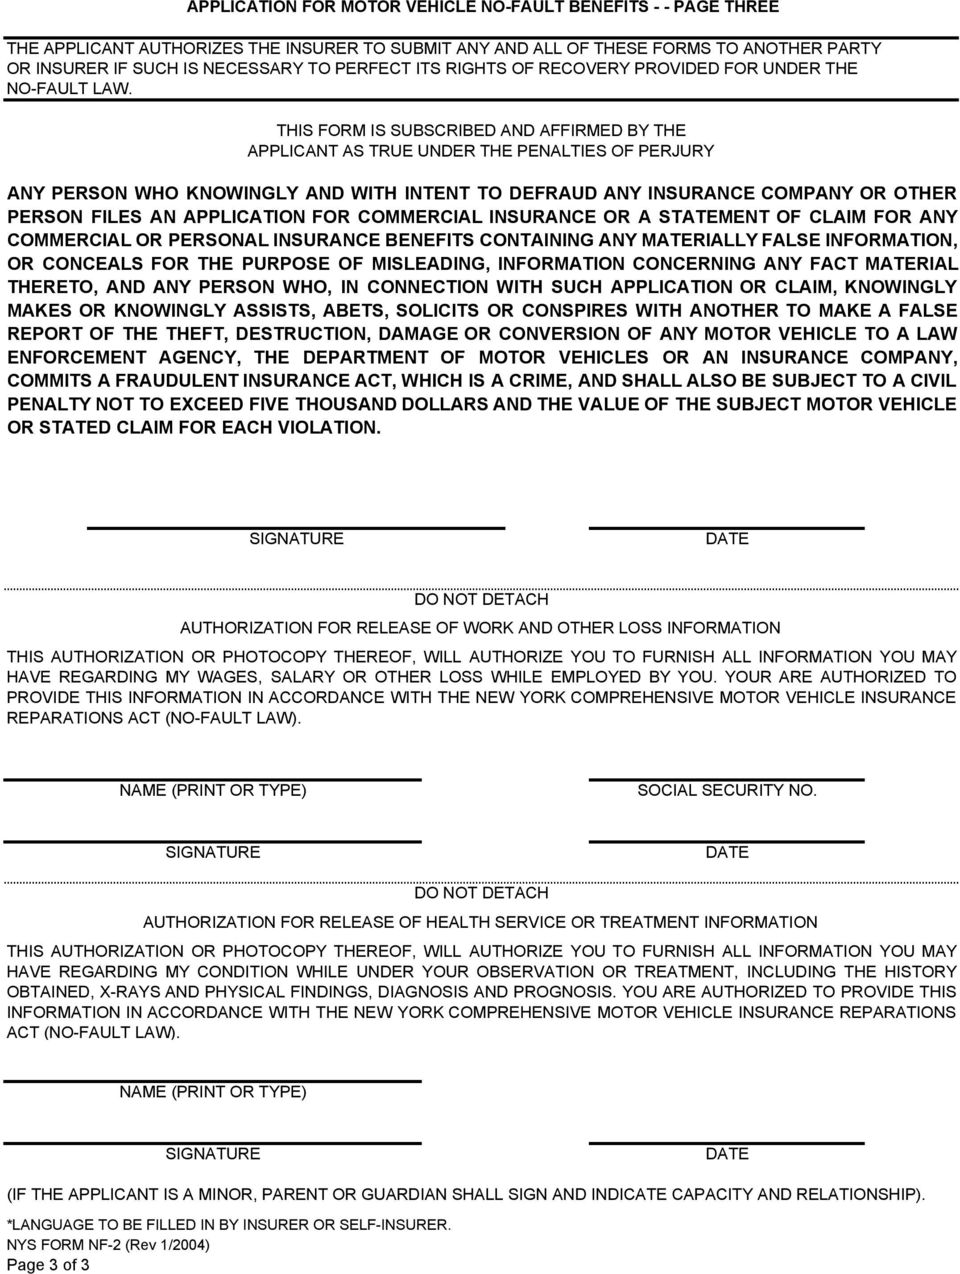 THIS FORM IS SUBSCRIBED AND AFFIRMED BY THE APPLICANT AS TRUE UNDER THE PENALTIES OF PERJURY ANY PERSON WHO KWINGLY AND WITH INTENT TO DEFRAUD ANY INSURANCE COMPANY OR OTHER PERSON FILES AN